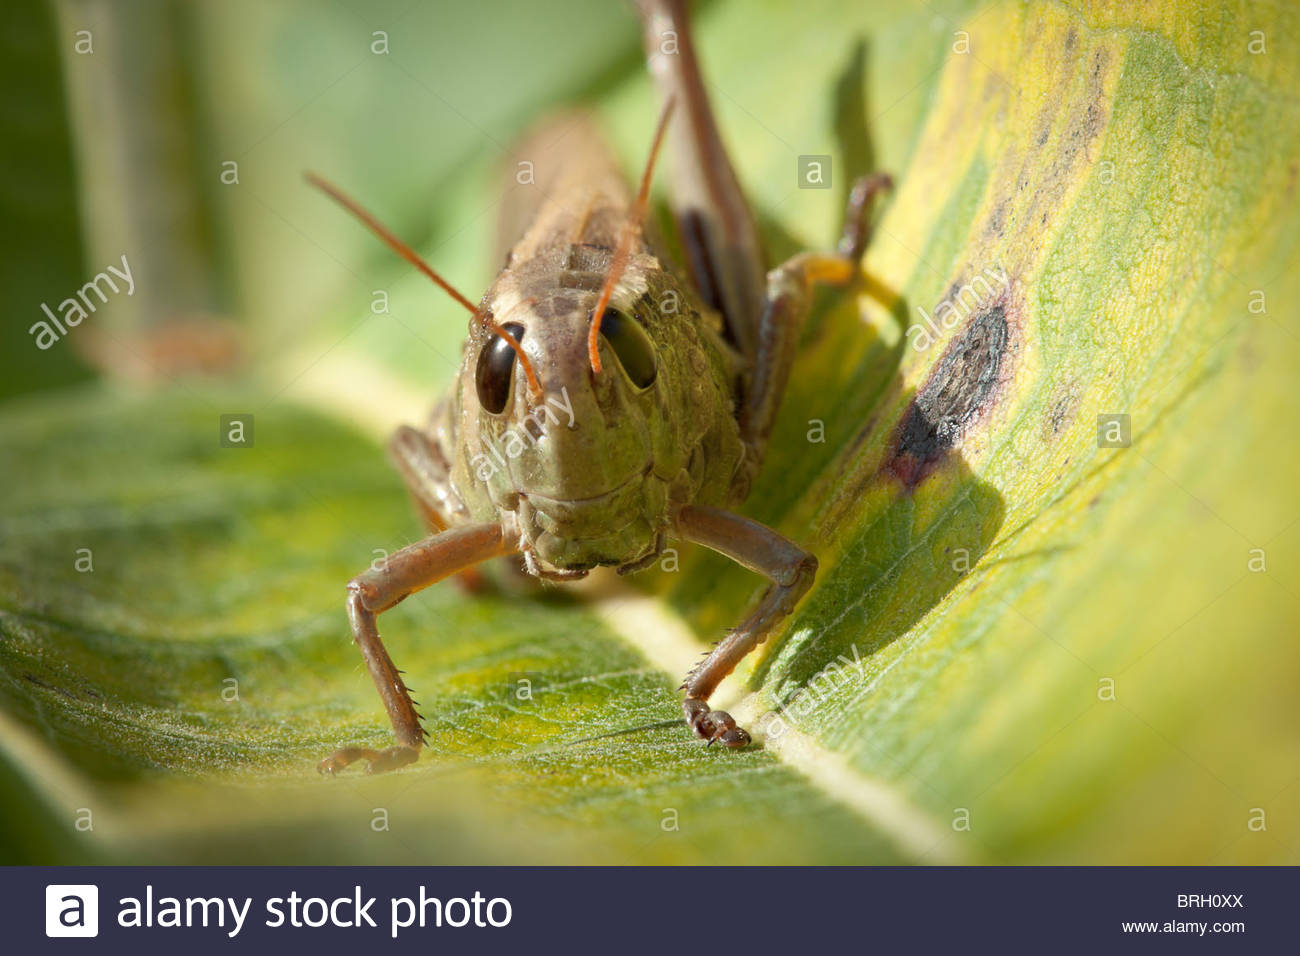 A grasshopper on a milkweed leaf in Rouge Park an urban wilderness in Toronto Ontario Canada - Stock Image